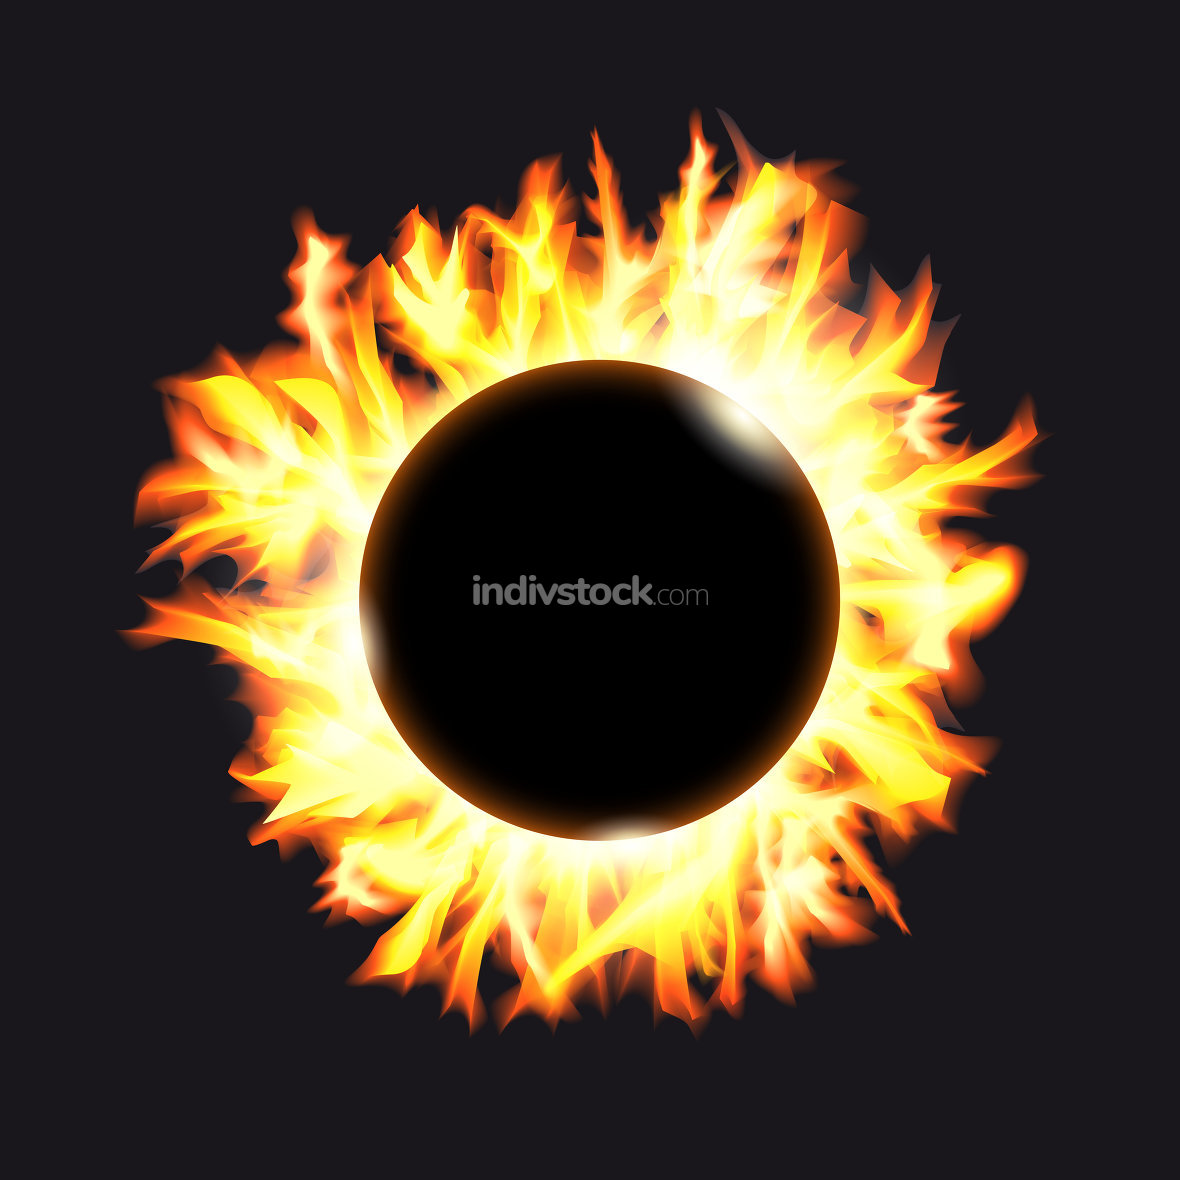 Solar eclipse. Frame of solar protuberances on a dark background